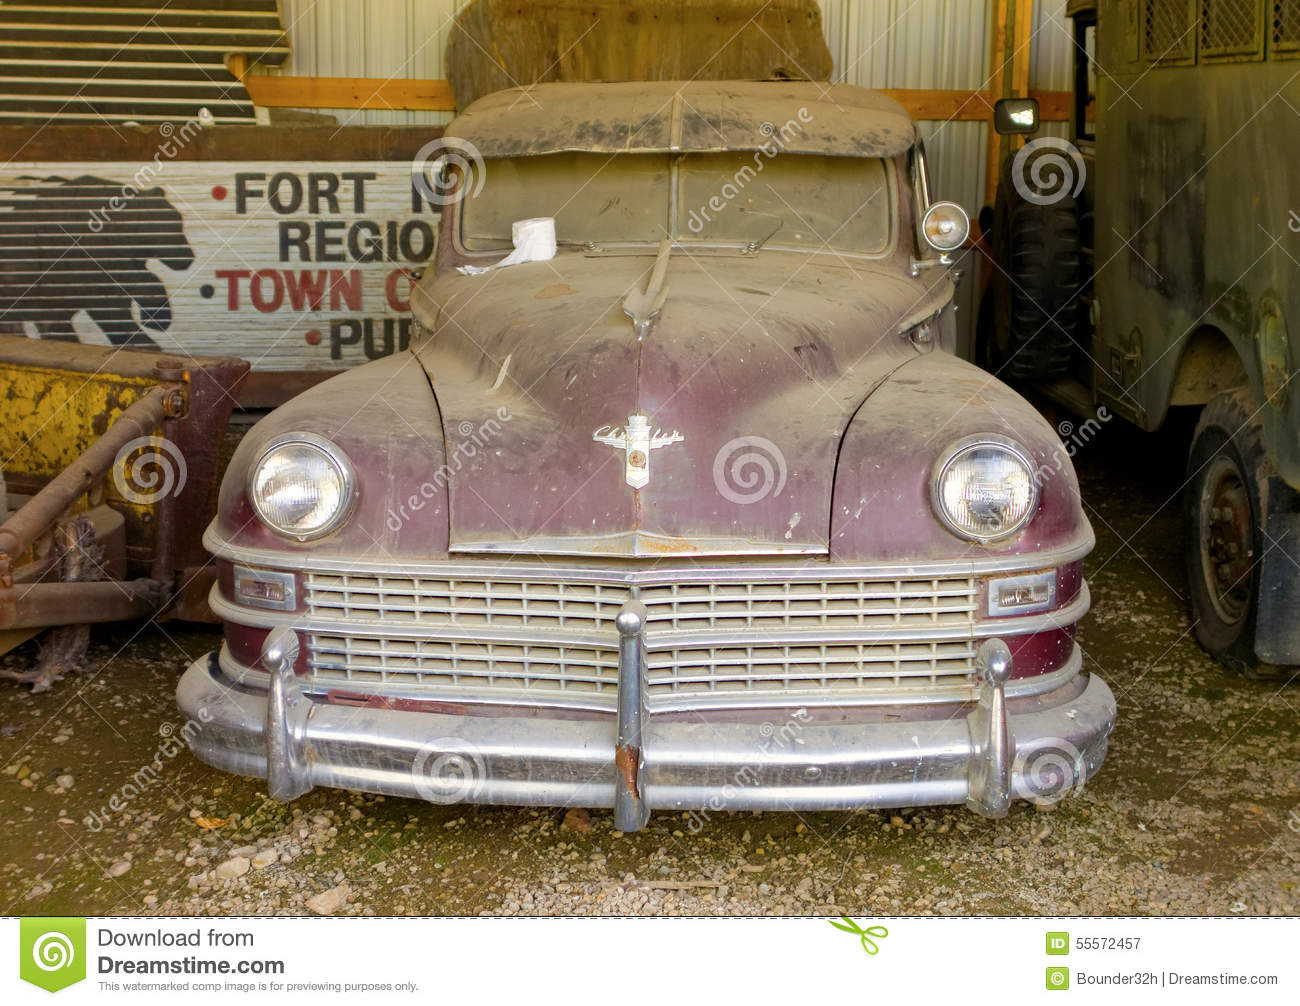 Cool Vintage Cars For Sale In Bc Ideas - Classic Cars Ideas - boiq.info